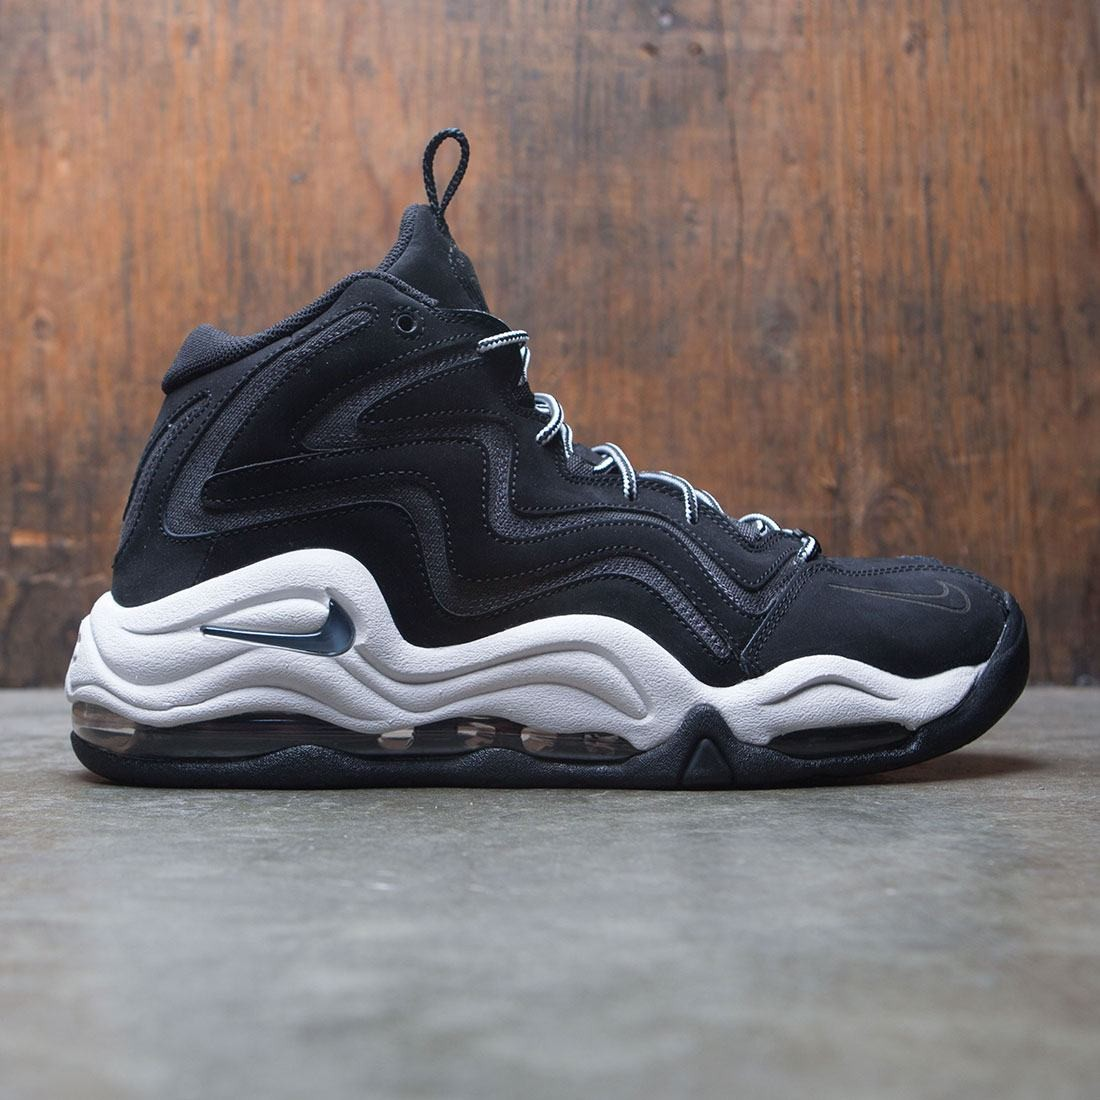 Nike Air Pippen 325001 004 BlackAnthraciteVast Grey Cipő